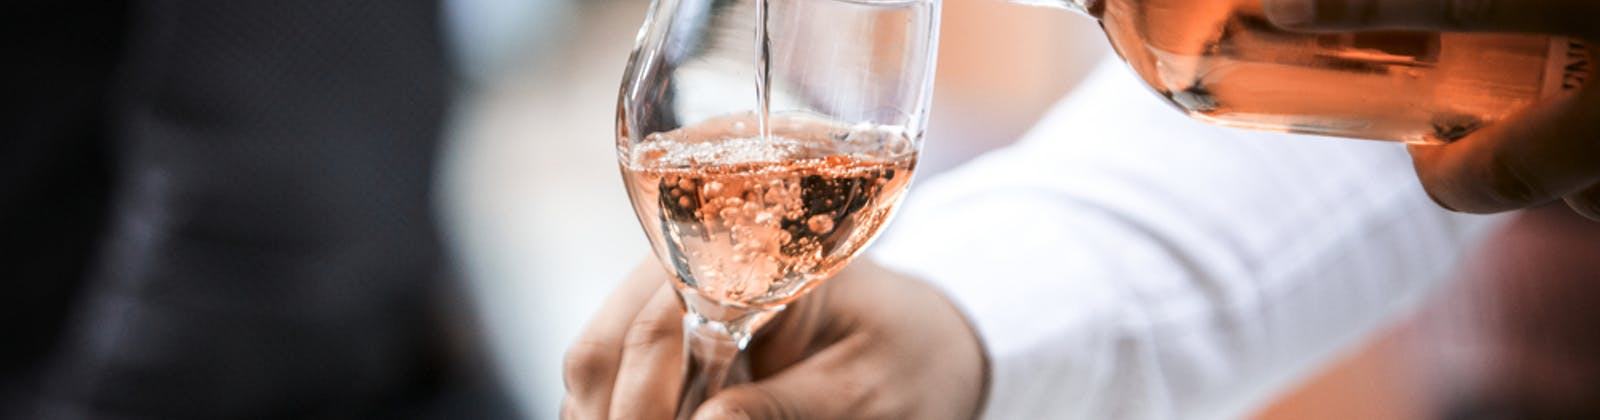 Rosé wine being poured in glass